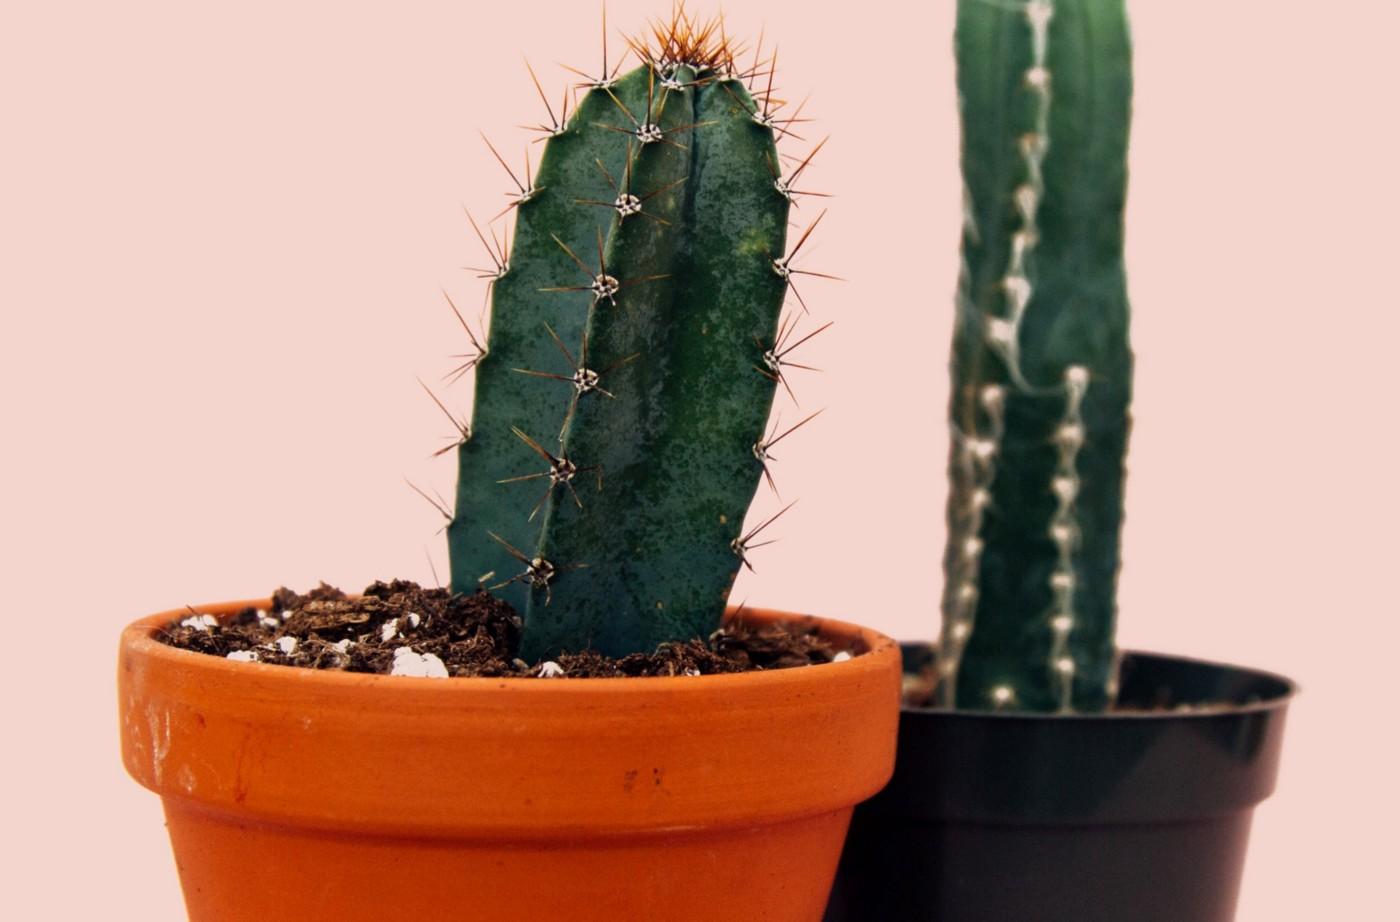 2 different kinds of prickly cactus plants in pots comparing themselves